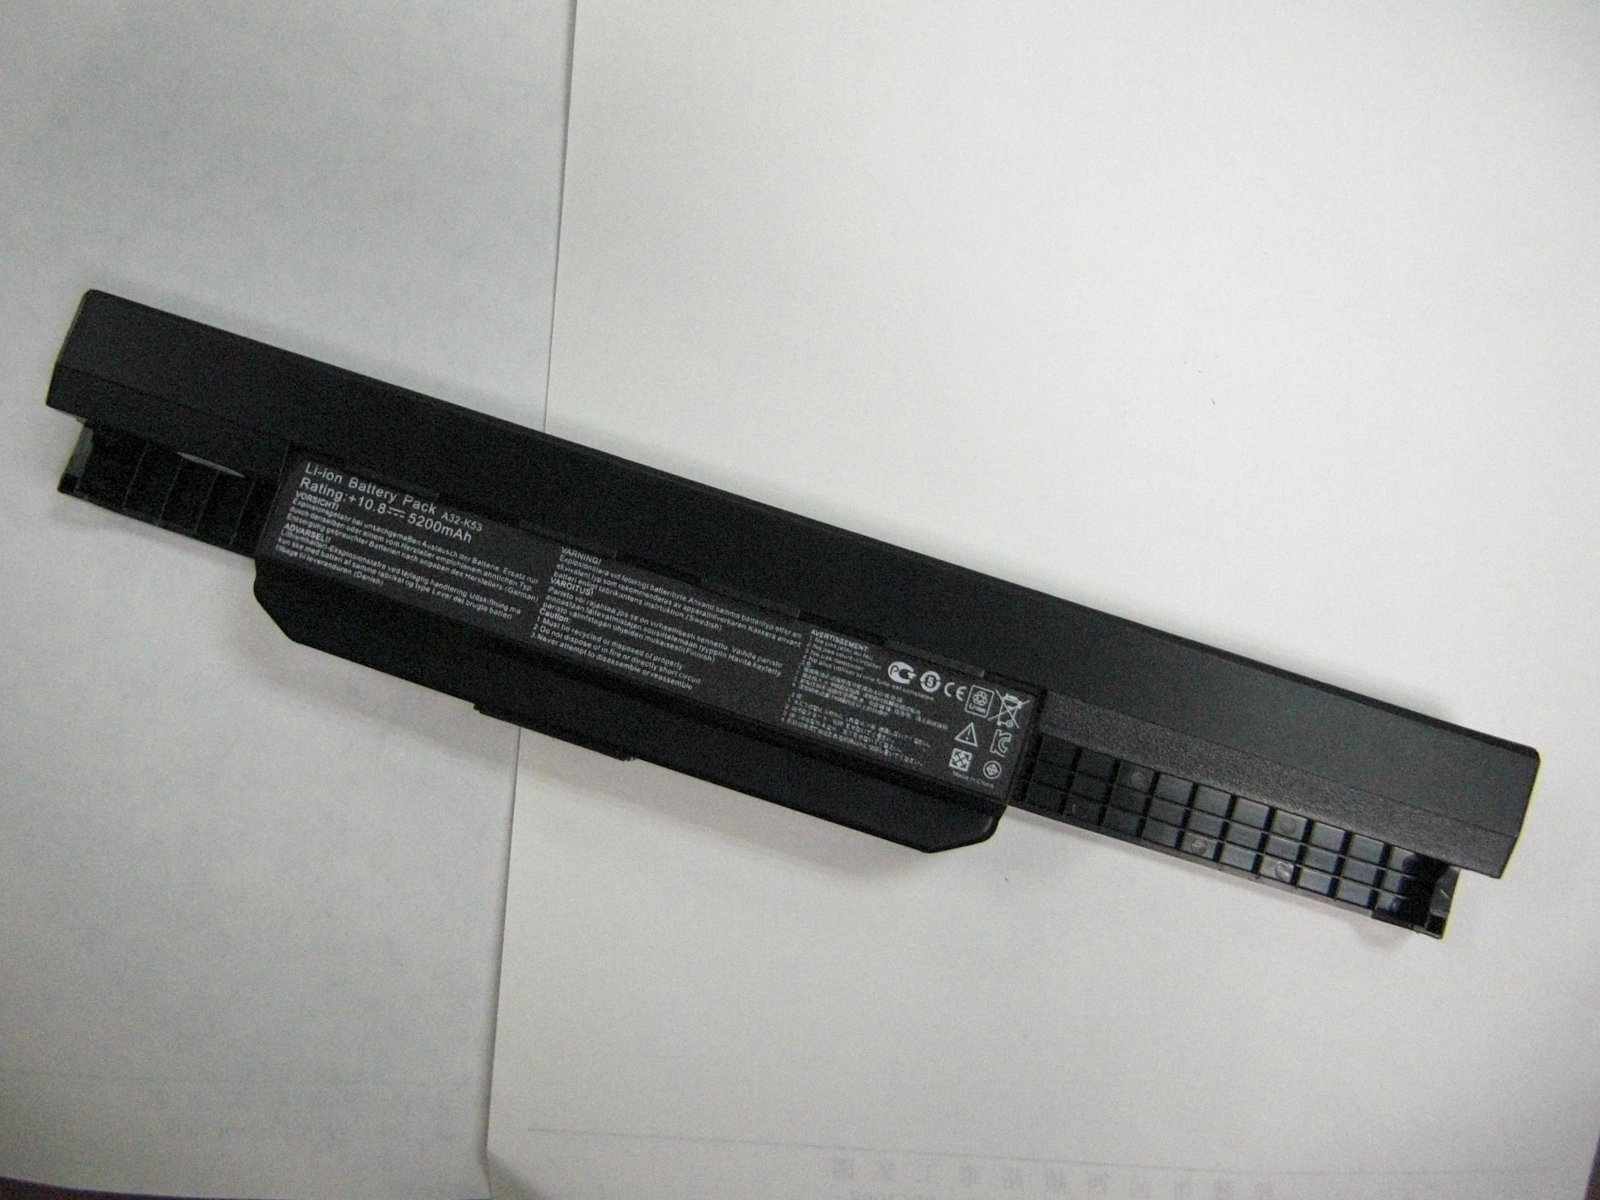 ASUS A42-K53 Laptop Battery